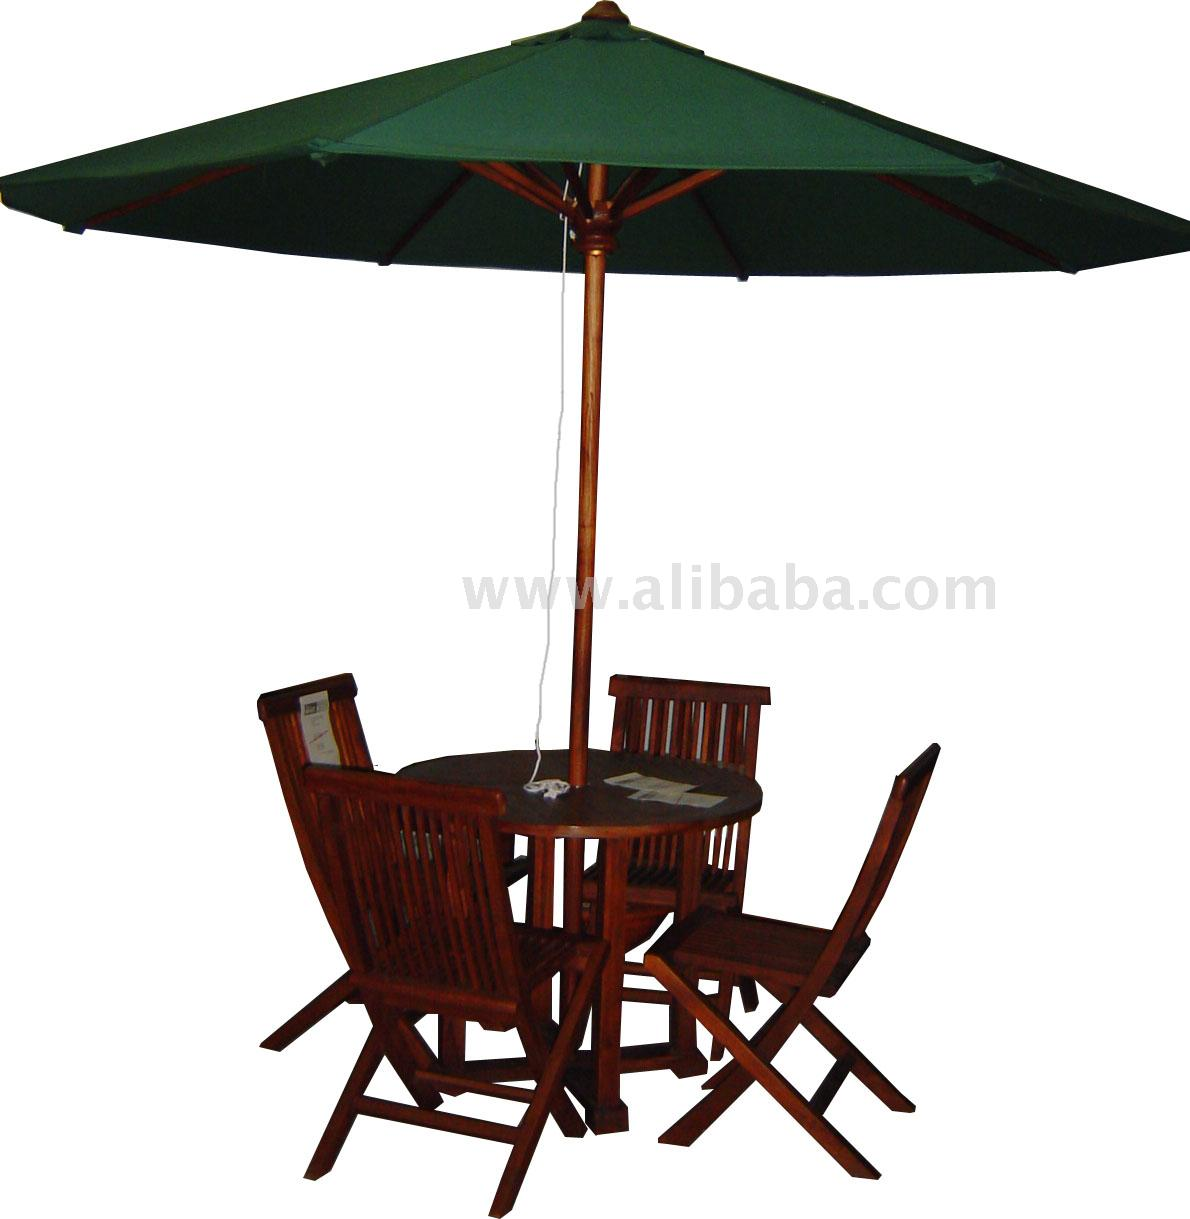 Chair With Umbrella Outdoor Teak Umbrella Folding Chair Table Buy Outdoor Umbrella Product On Alibaba